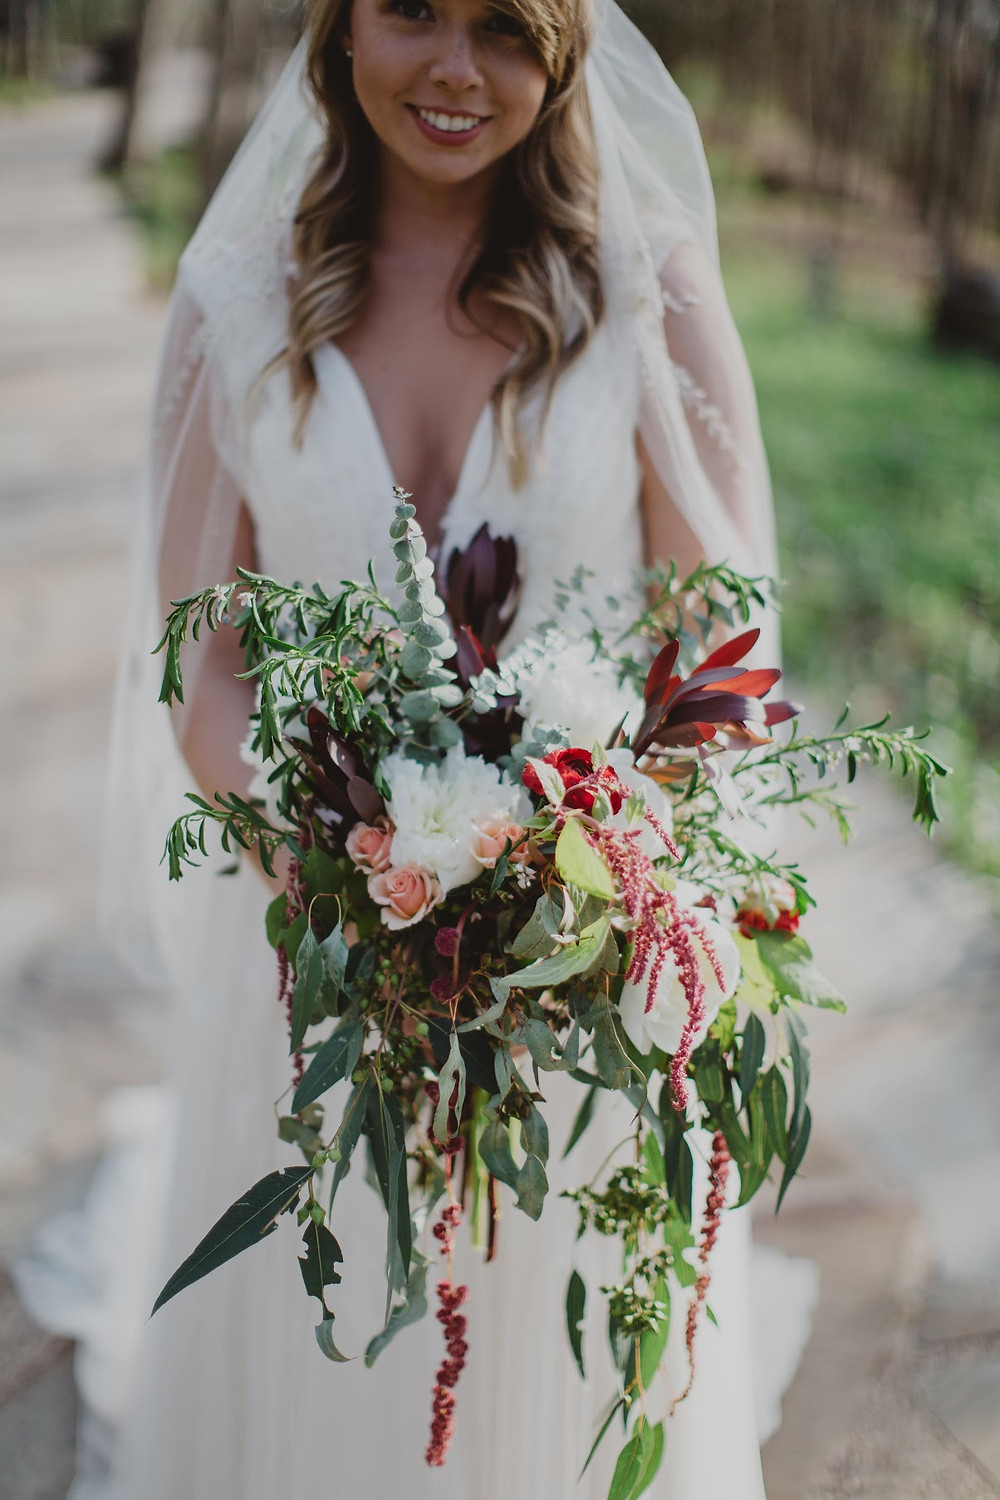 flower and greenery bouquet with bride